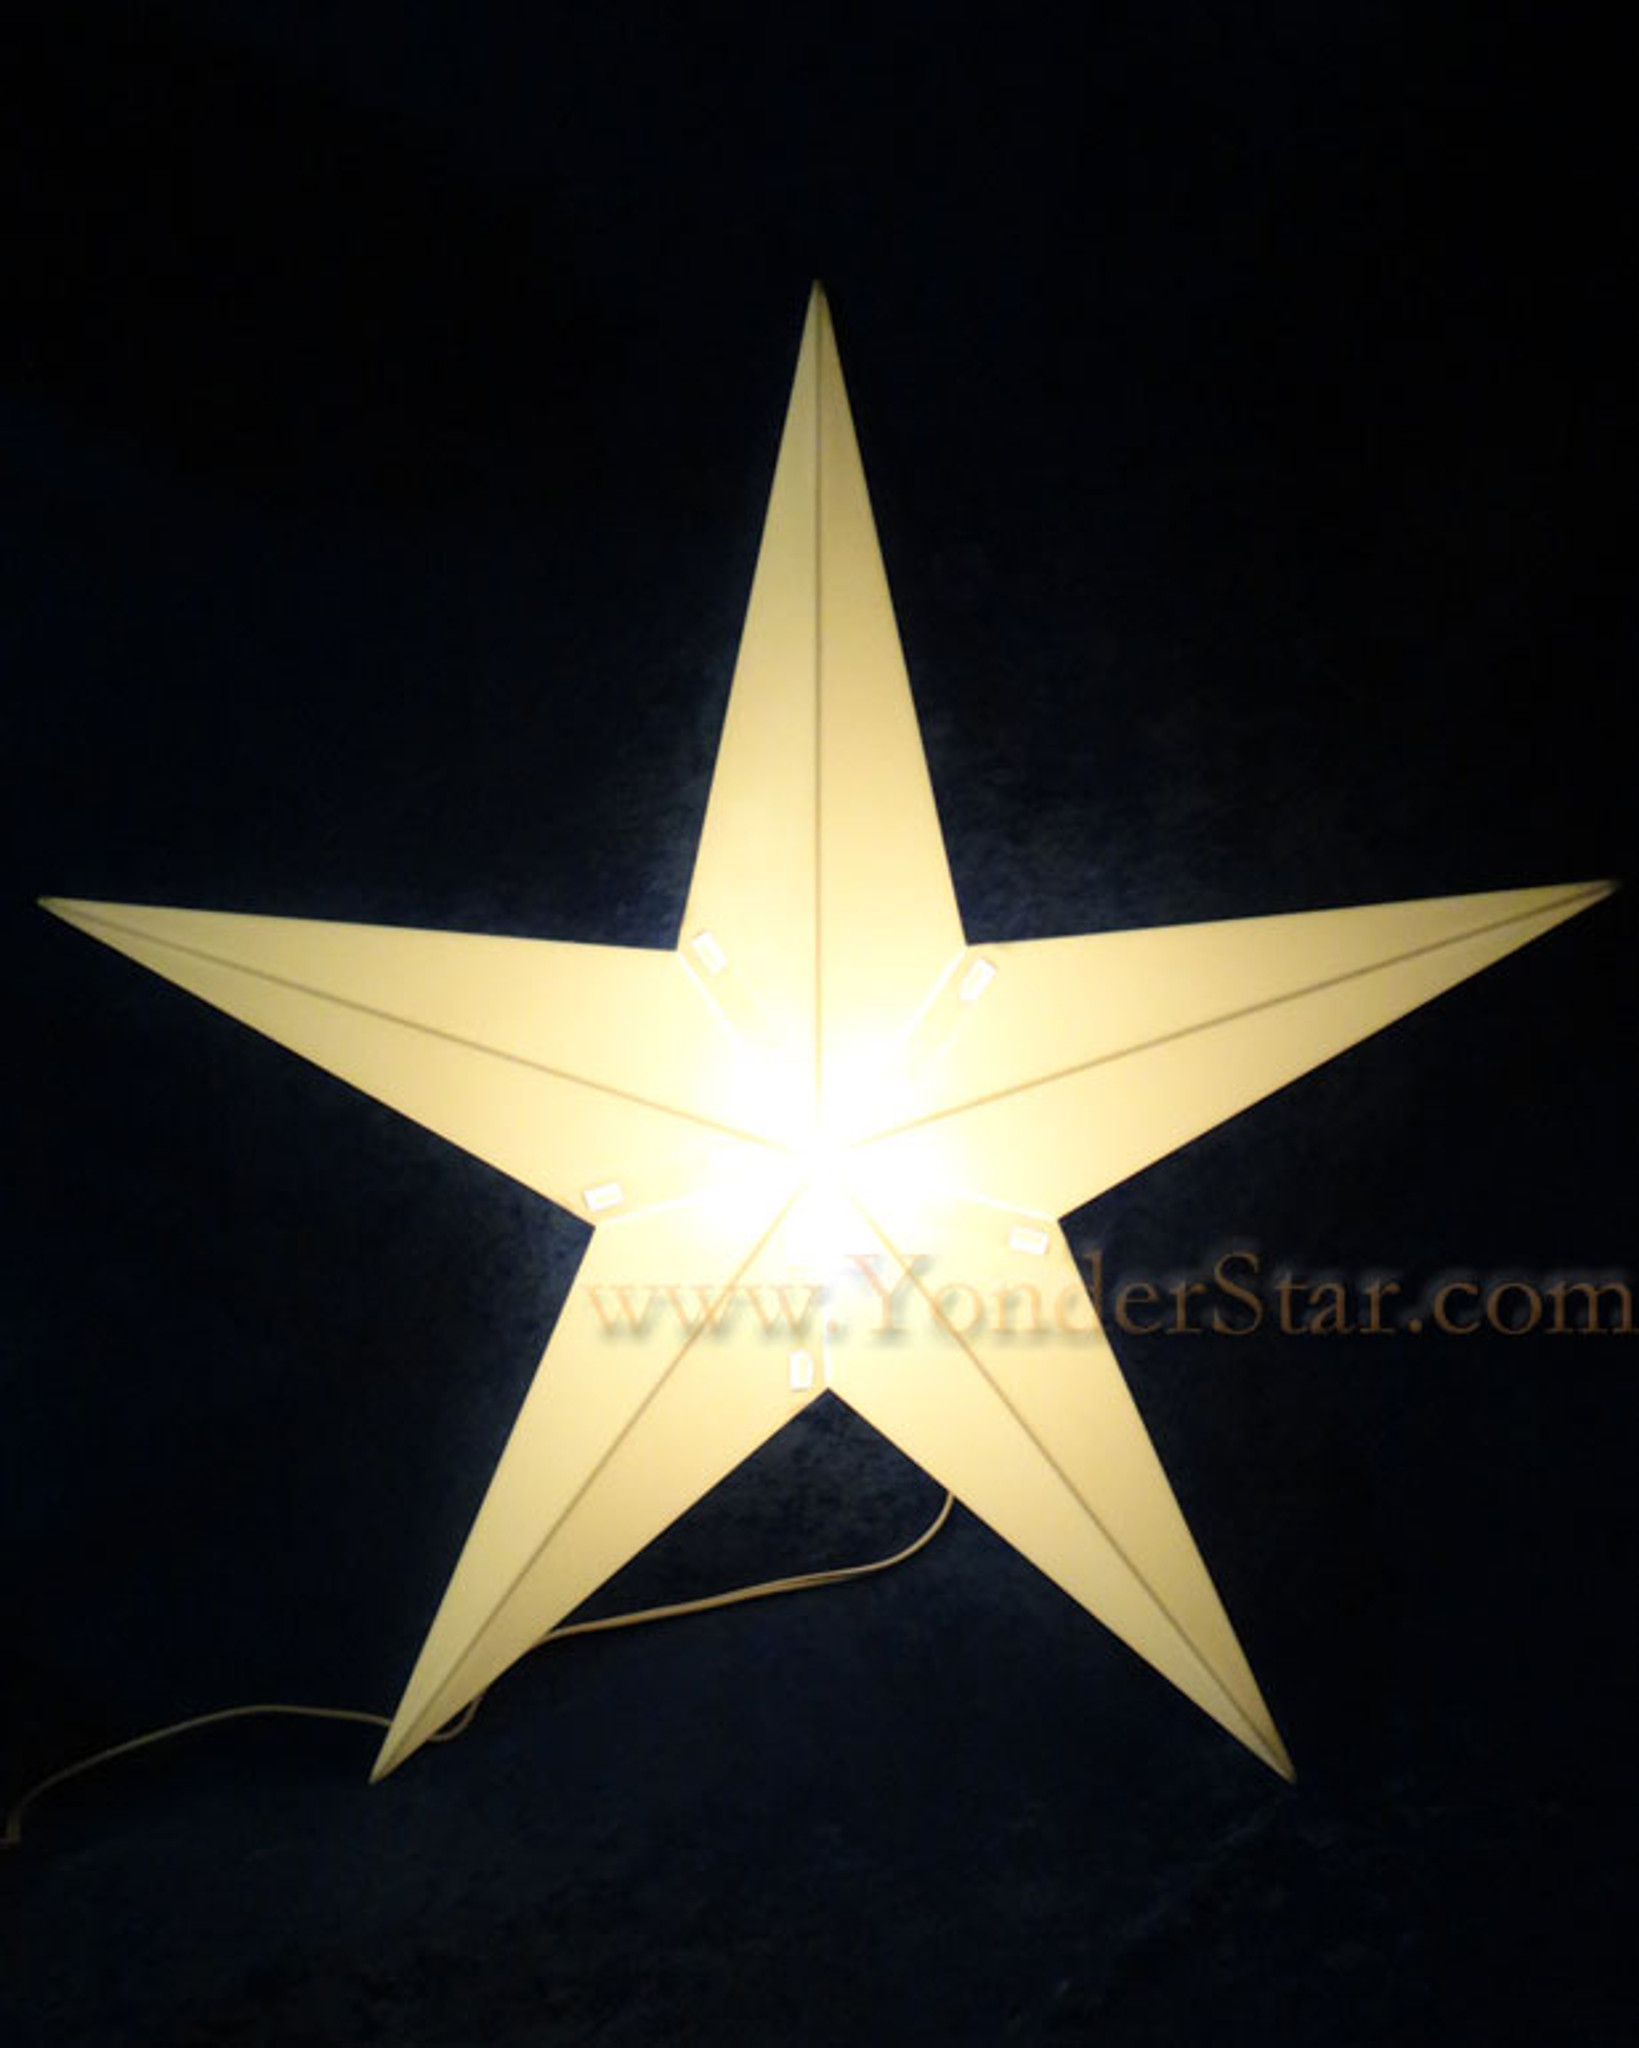 22 outdoor lighted star yonder star christmas shop llc 22 outdoor lighted star mozeypictures Gallery